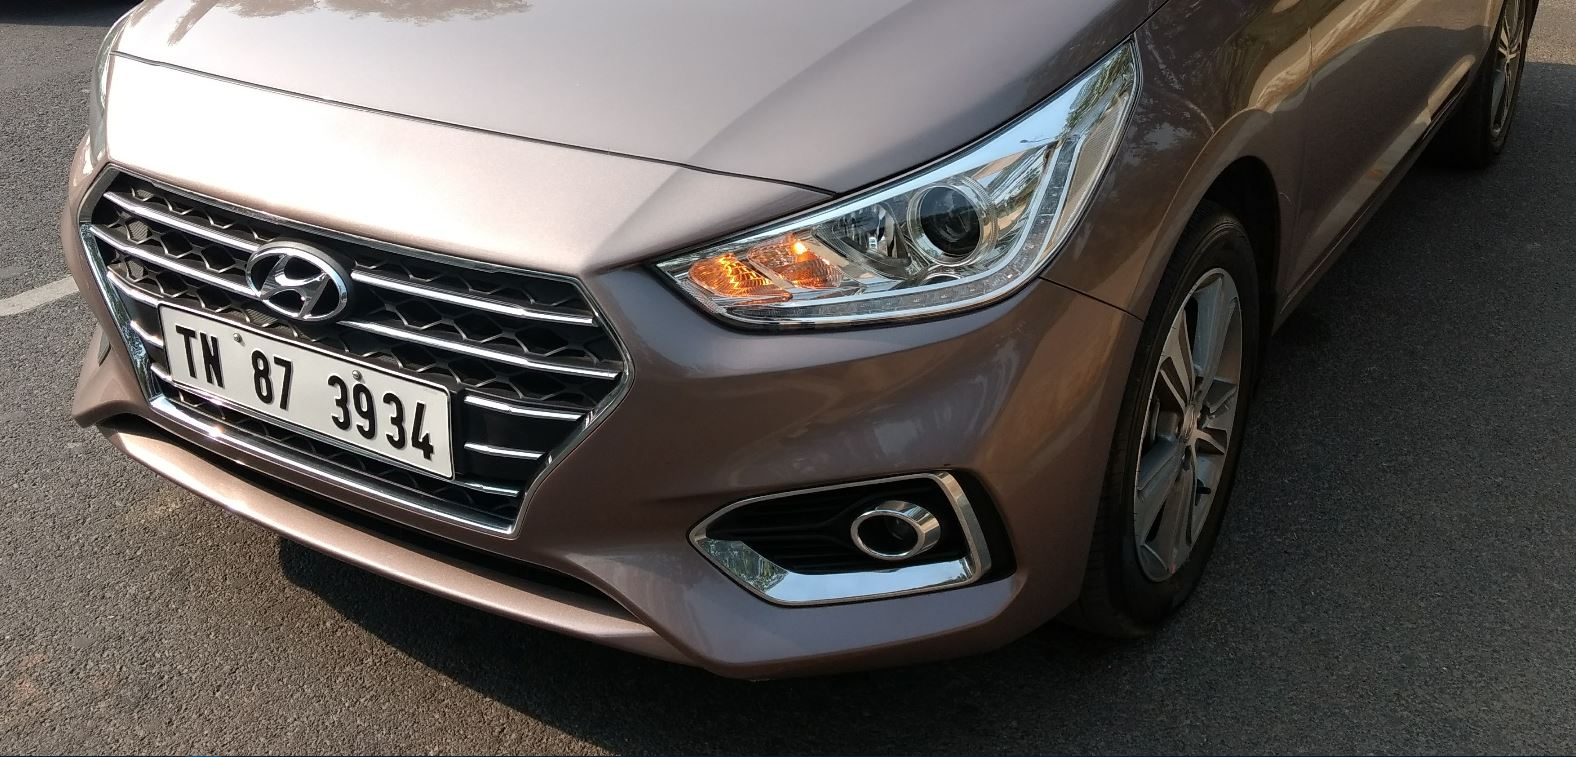 Hyundai Verna Test Drive Review